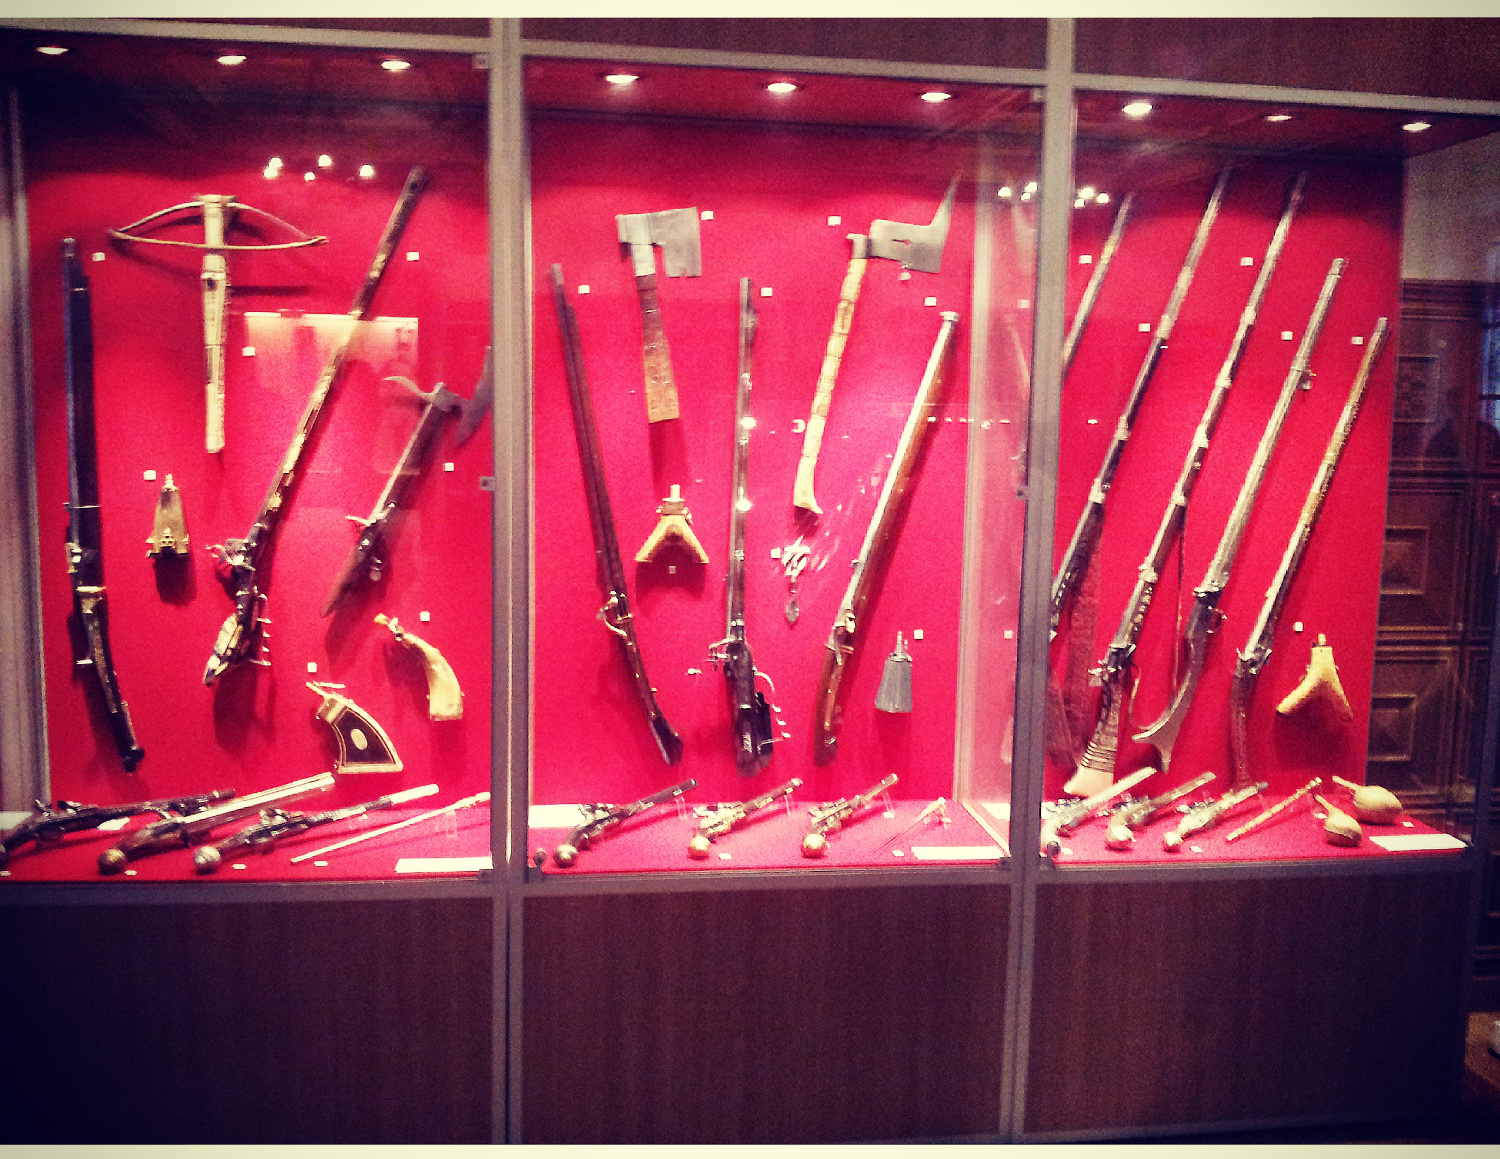 Exhibition of guns from various periods of time